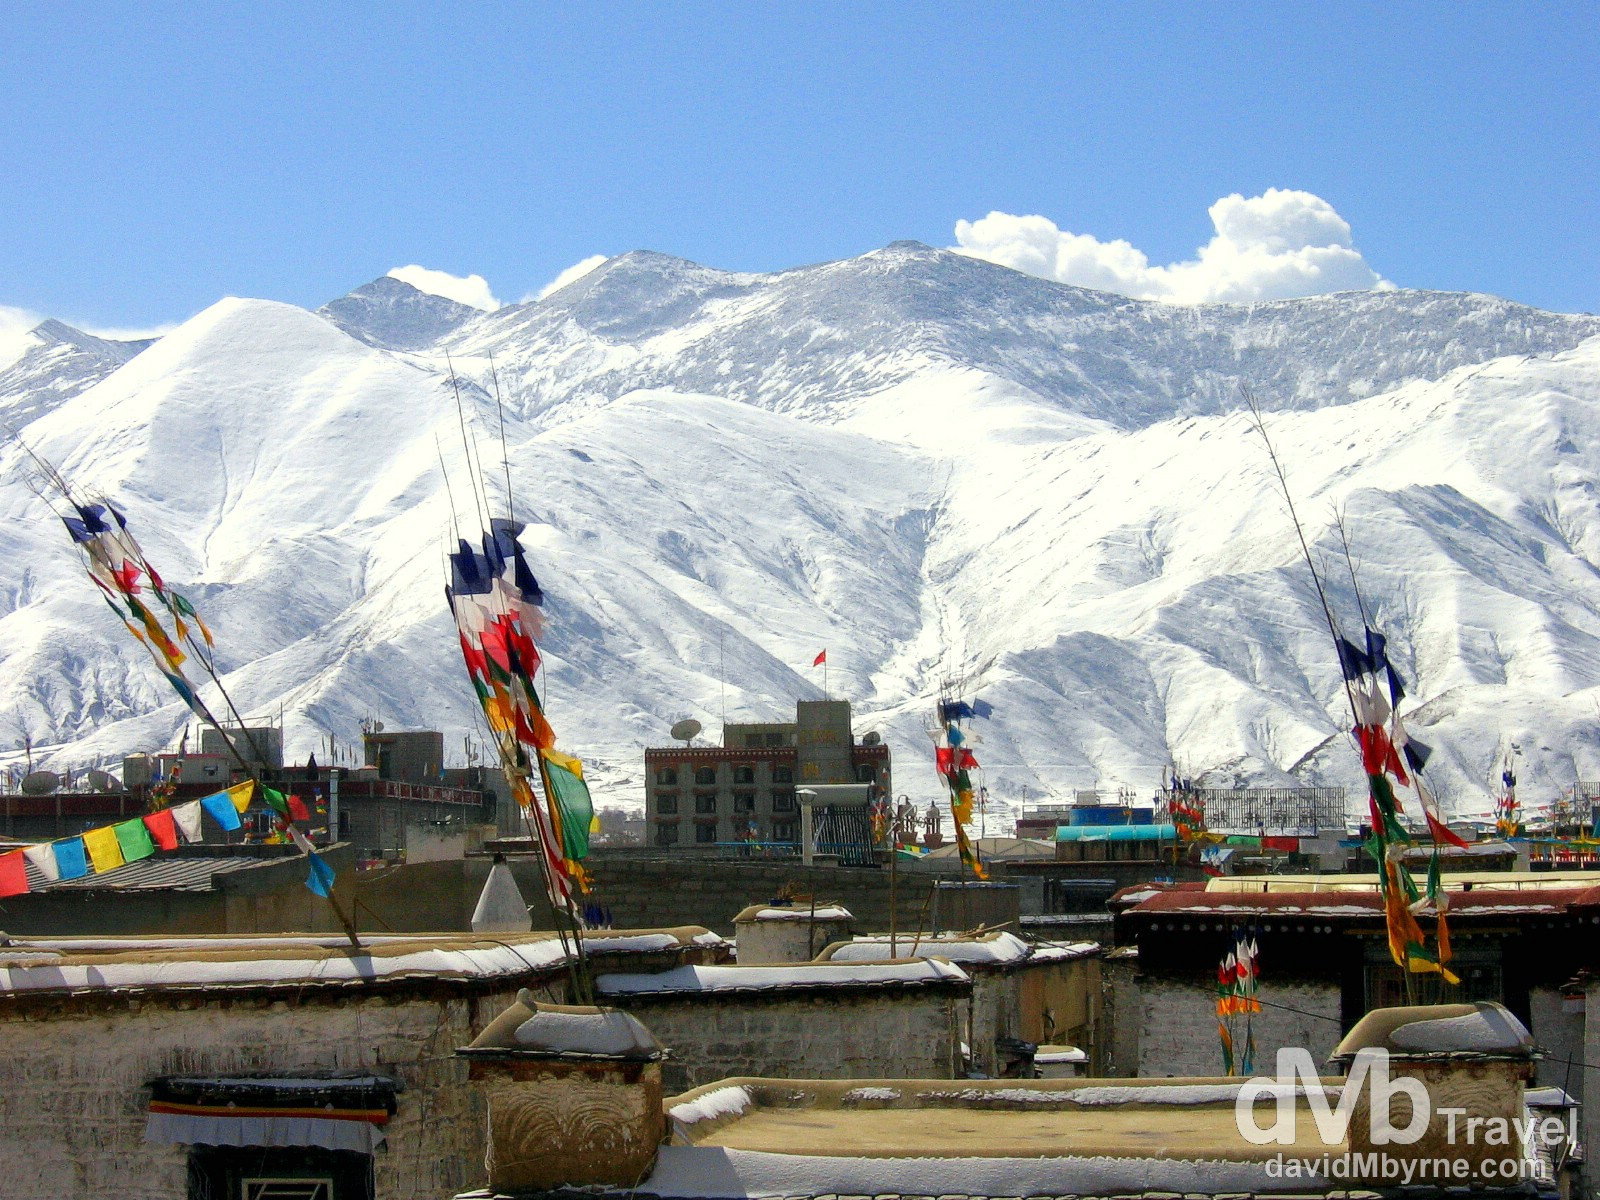 The view of the surrounding Himalaya Mountains from the rooftop of the Jokhang Temple, Lhasa, Tibet. February 27th 2008.